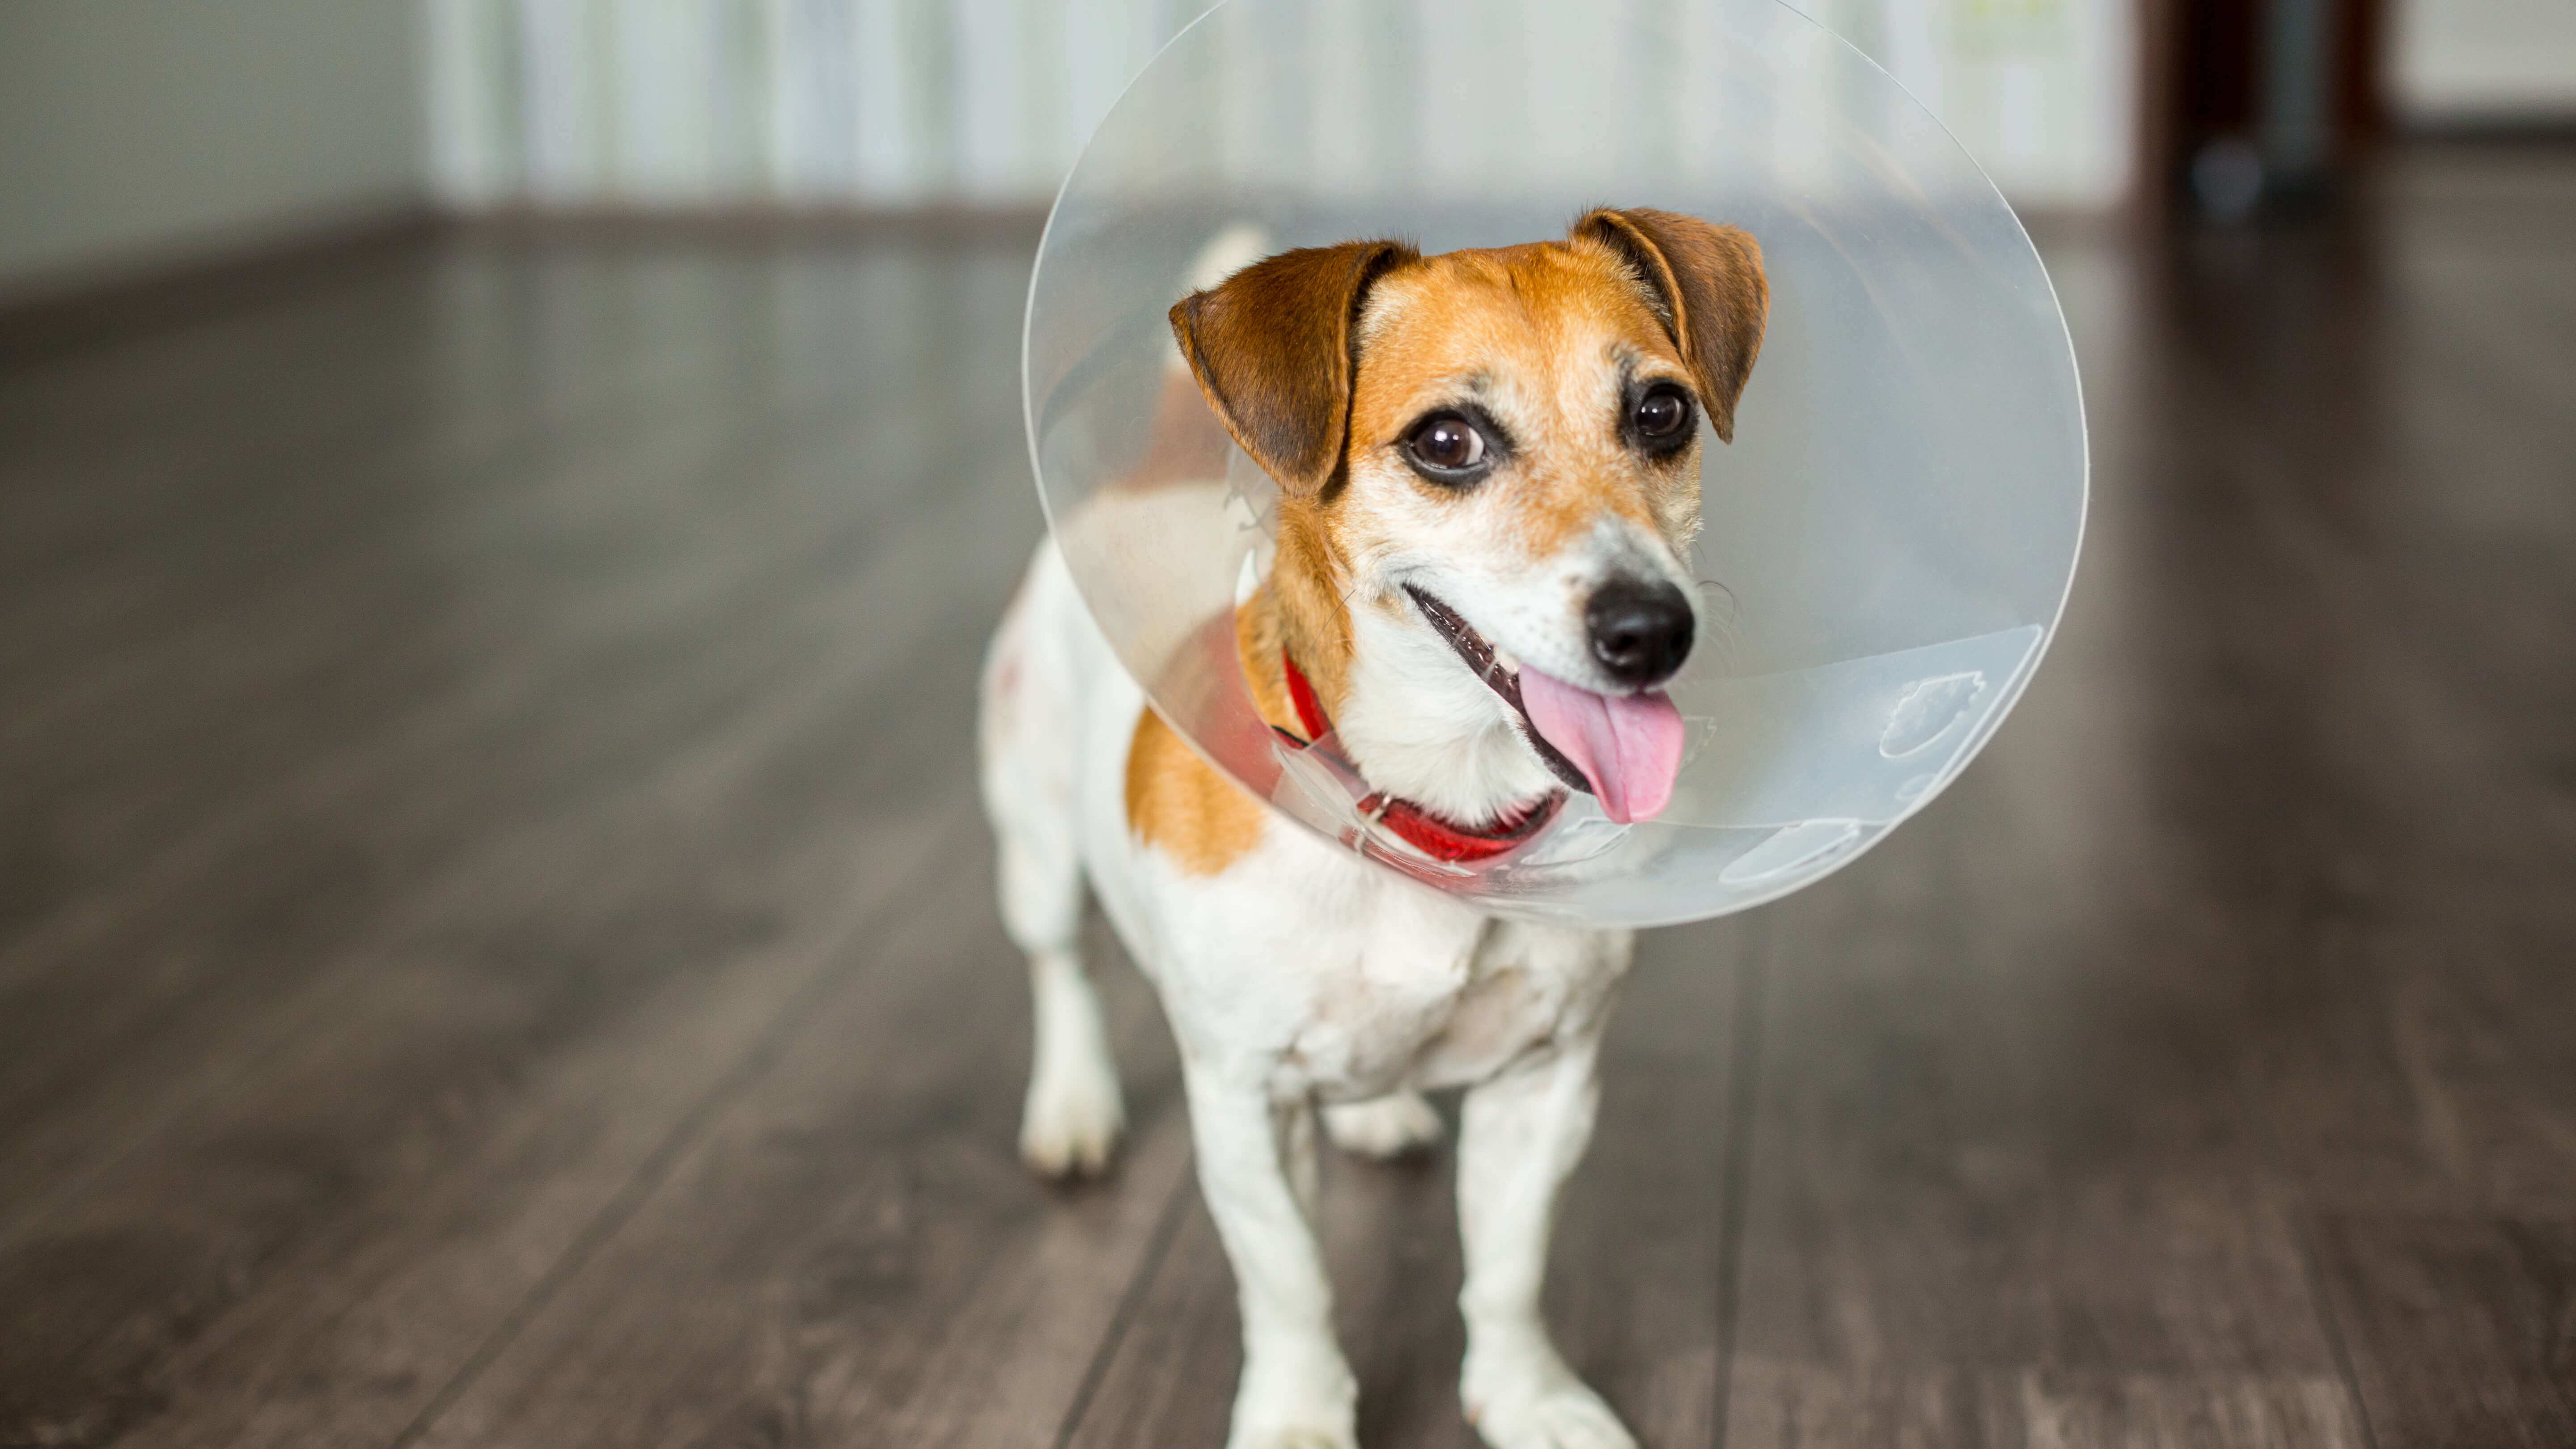 Should I Spay or Neuter My Dog? 5 Commonly Asked Questions